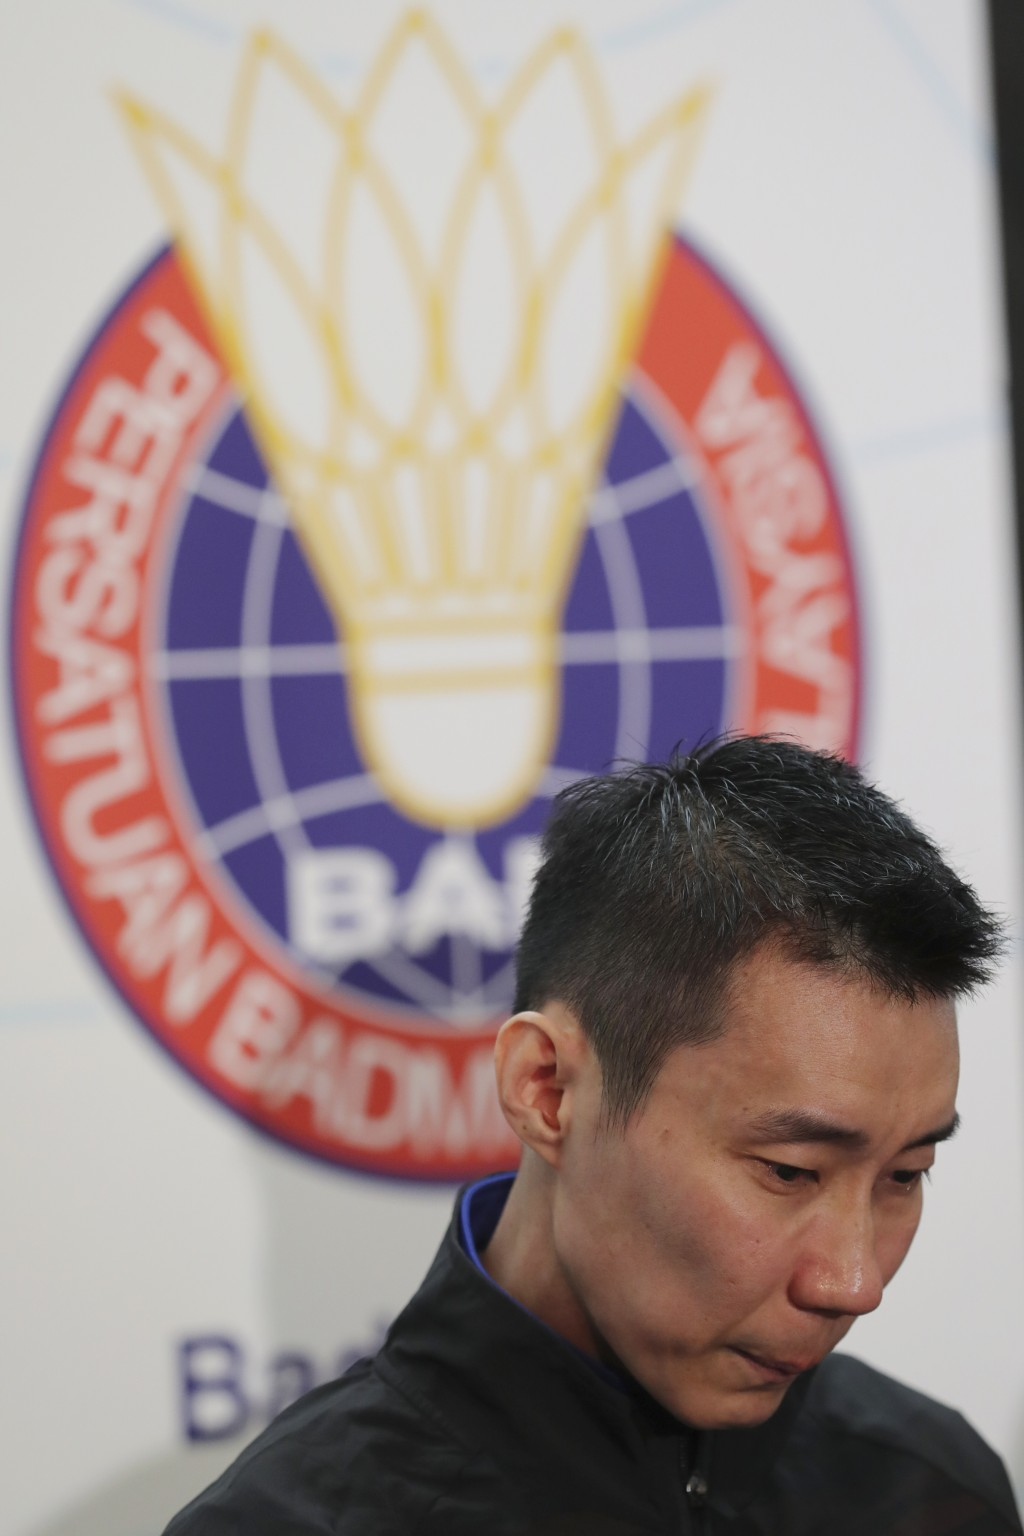 Malaysian badminton player Lee Chong Wei speaks during a press conference in Putrajaya, Malaysia, Thursday, June 13, 2019. Former World No. 1-ranked L